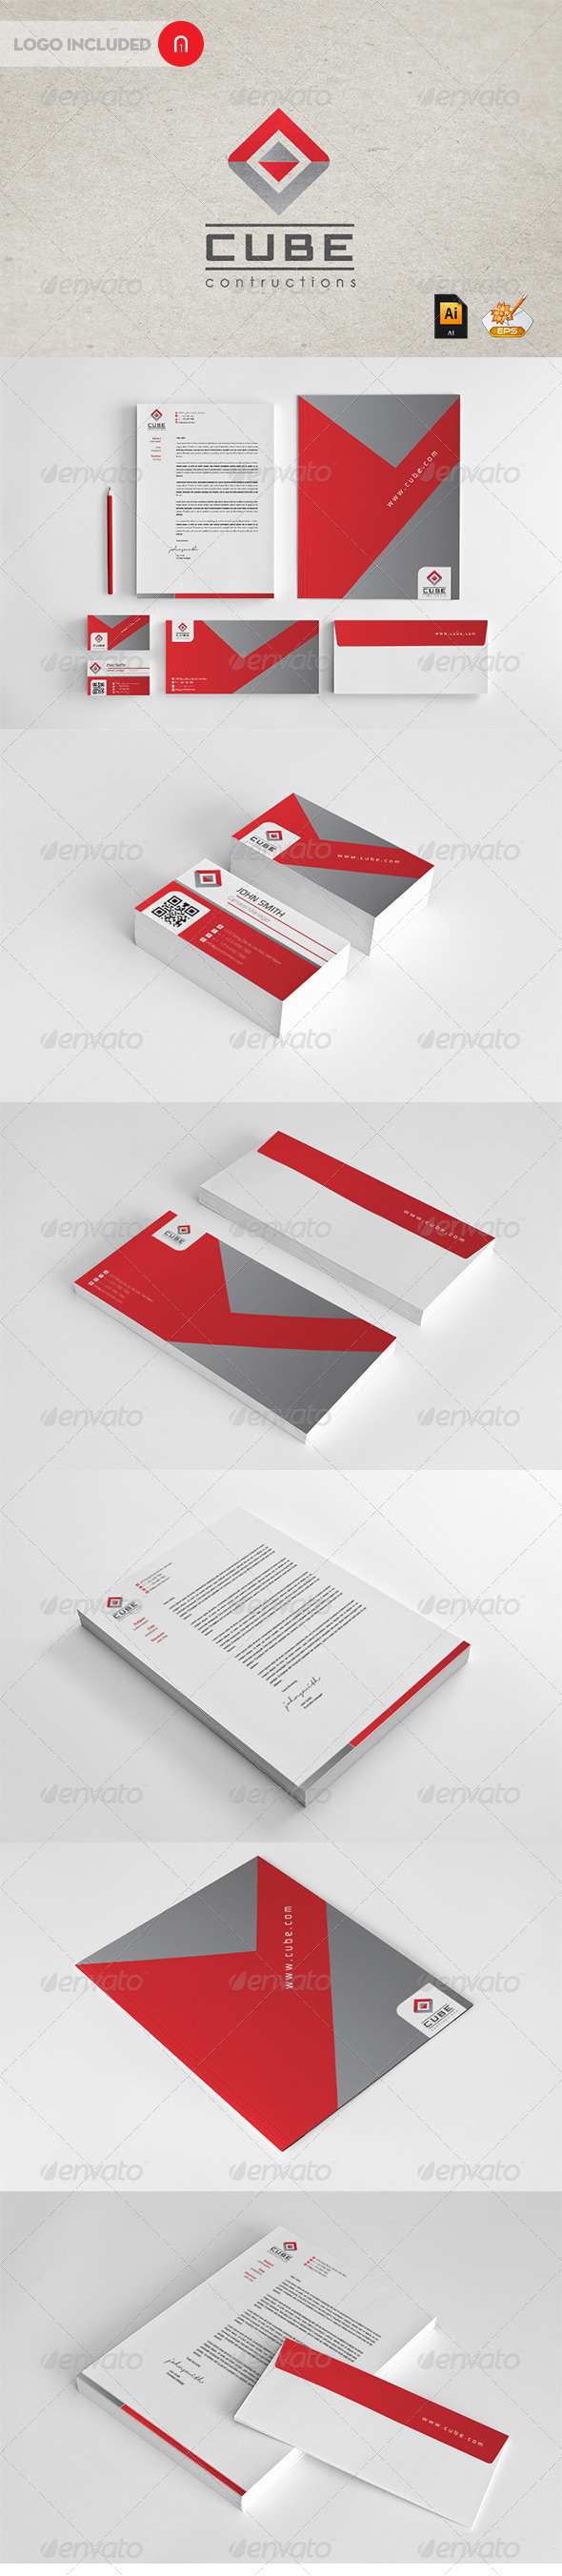 GraphicRiver Stationary & Identity Cube contructions 2671810